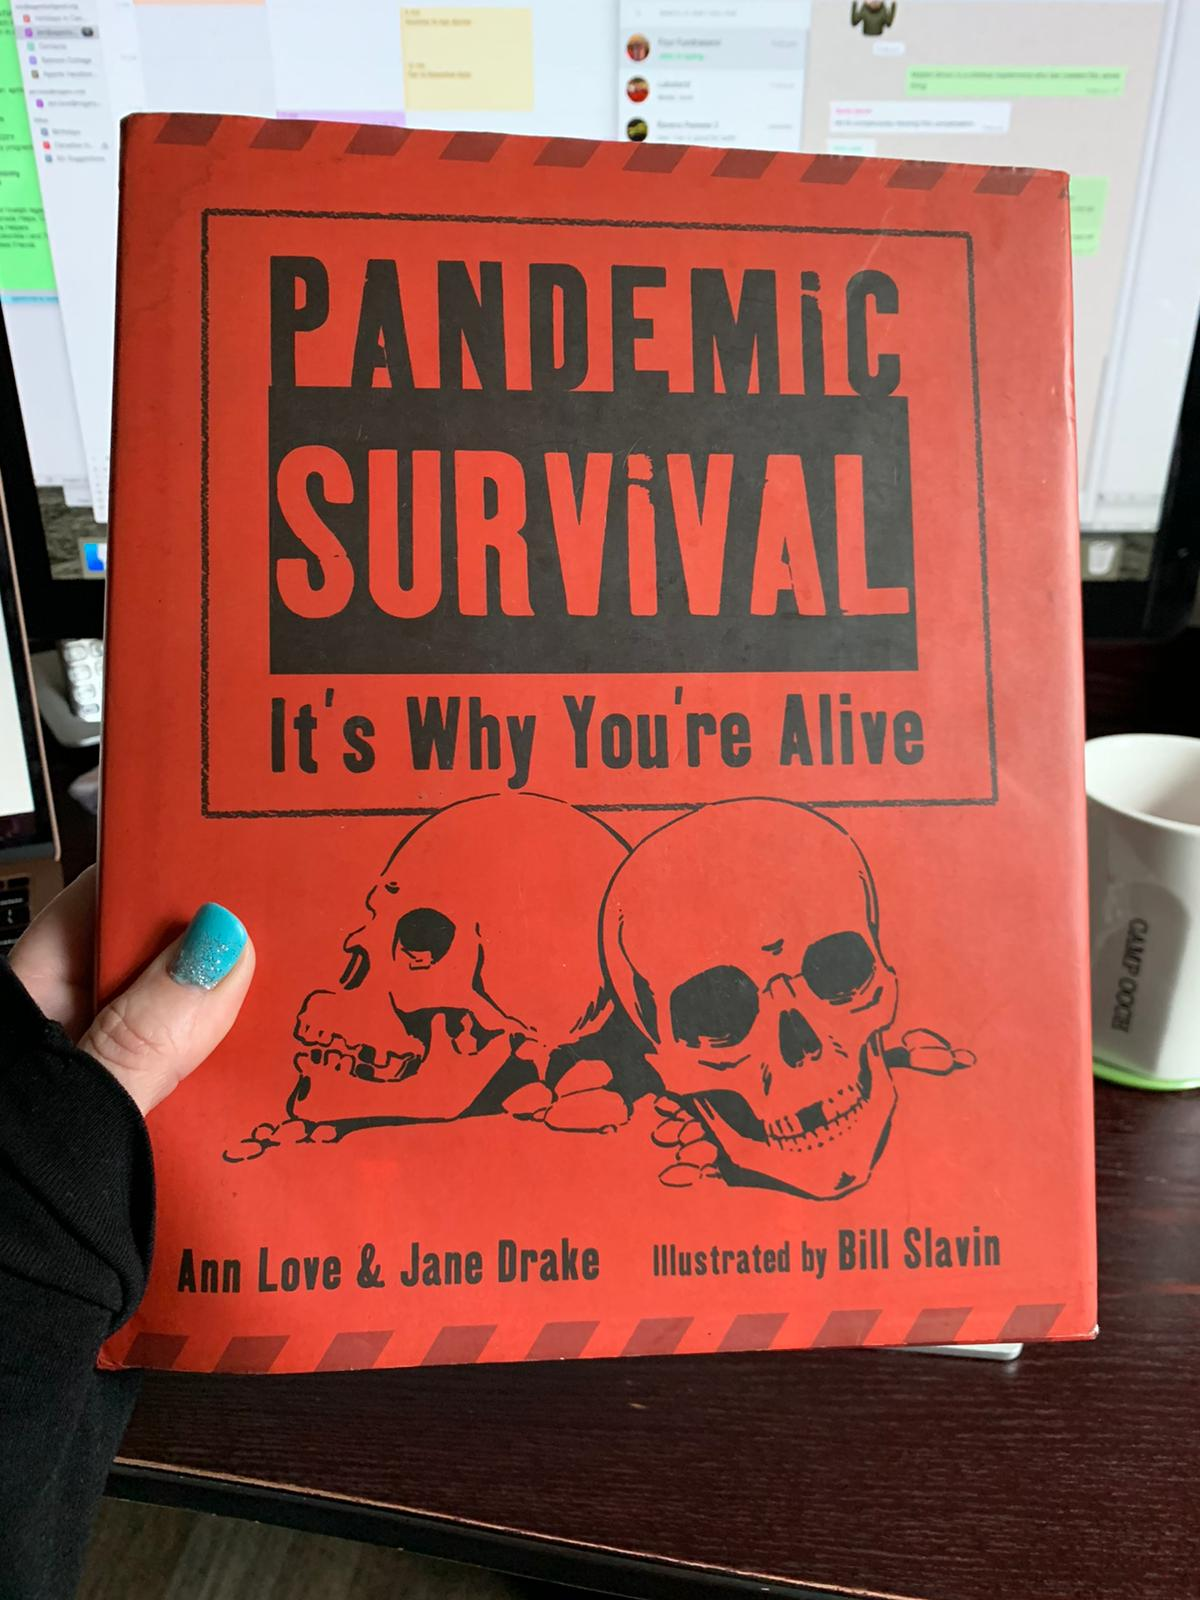 A hand with blue nail polish holding a book. The cover is an alarming shade of red, with two drawn skulls on it. The book title is Pandemic survival - it's why you are alive. Authors Ann Love and Jane Drake, Illustrated by Bill Slavin.